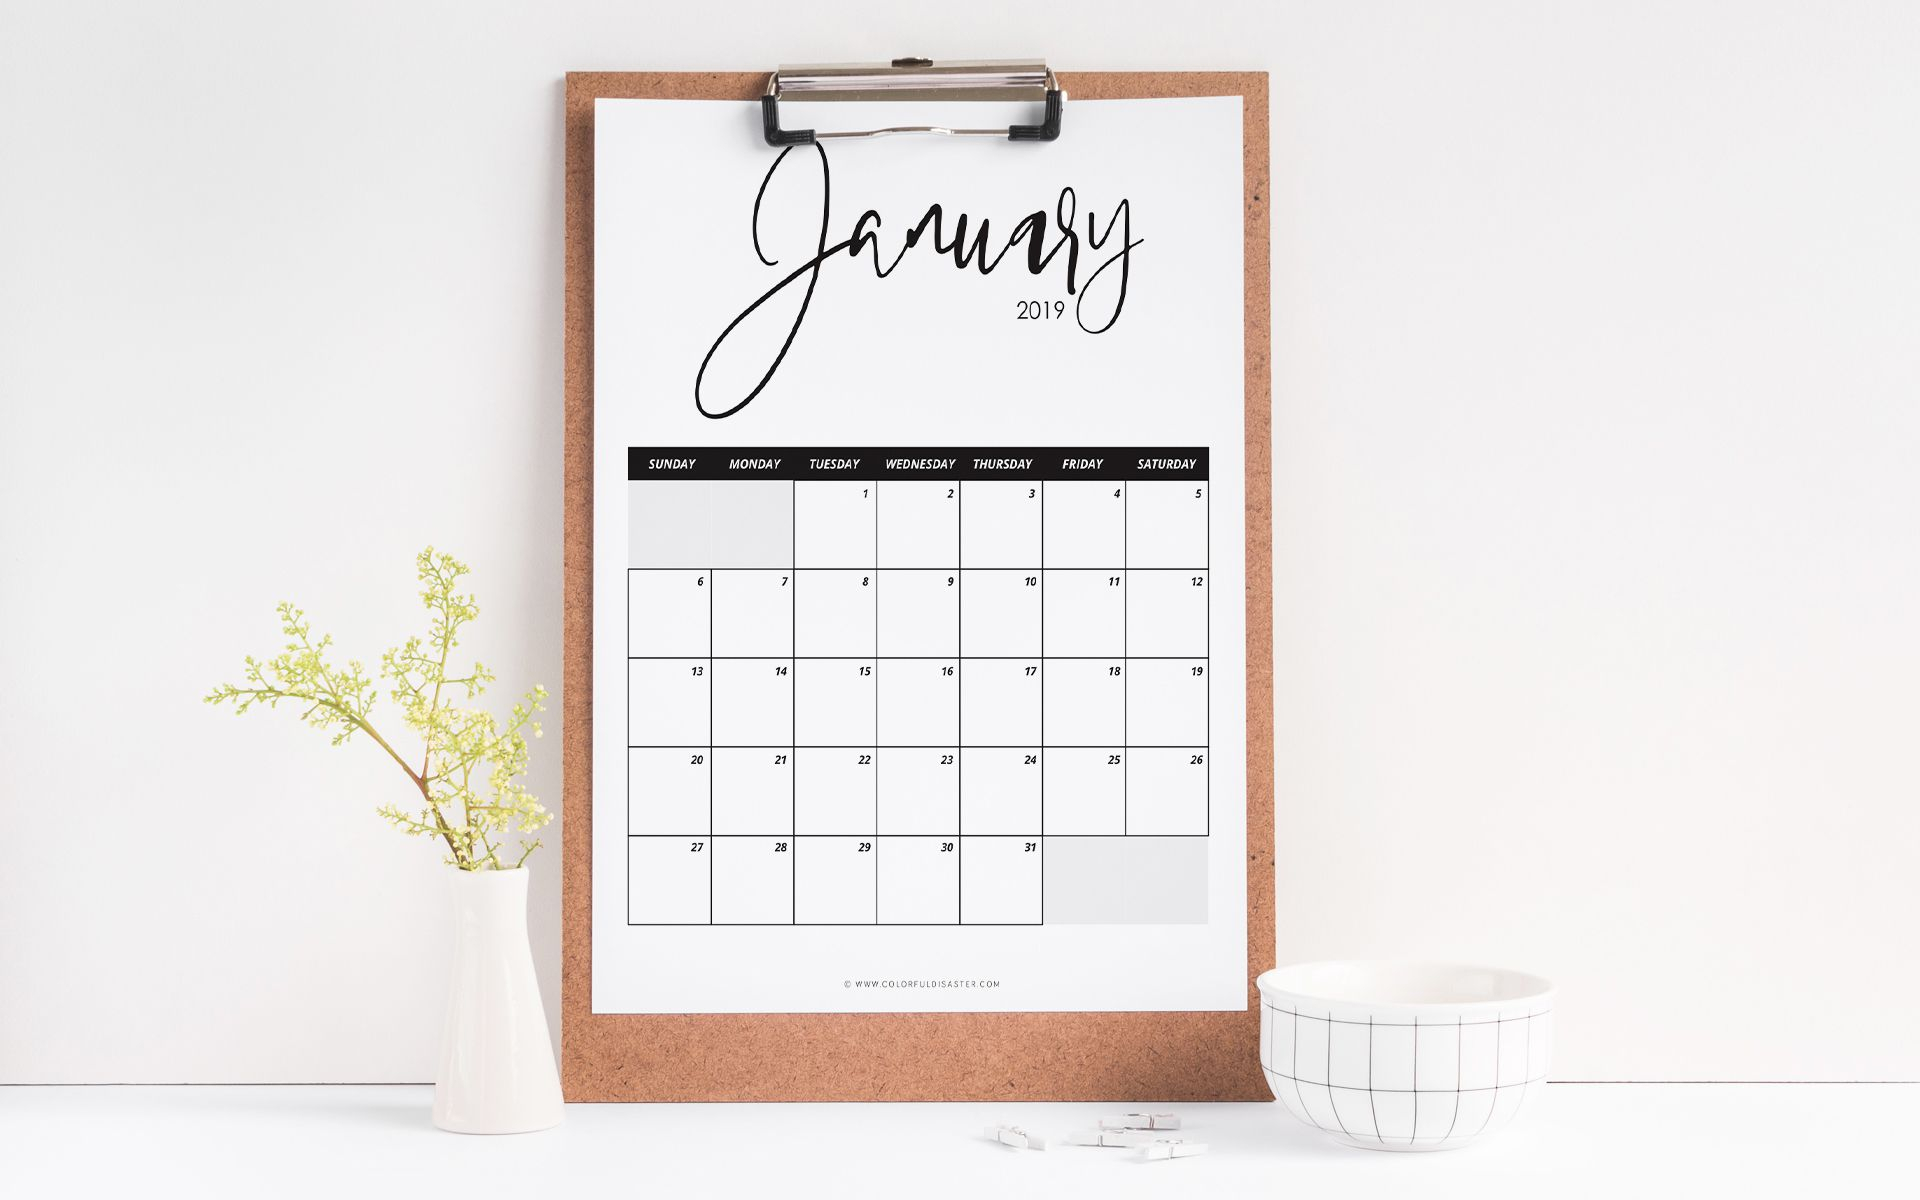 10 Stylish Free, Printable Calendars For 2019 in Free Printable Preschool Handprint Calendar Templates